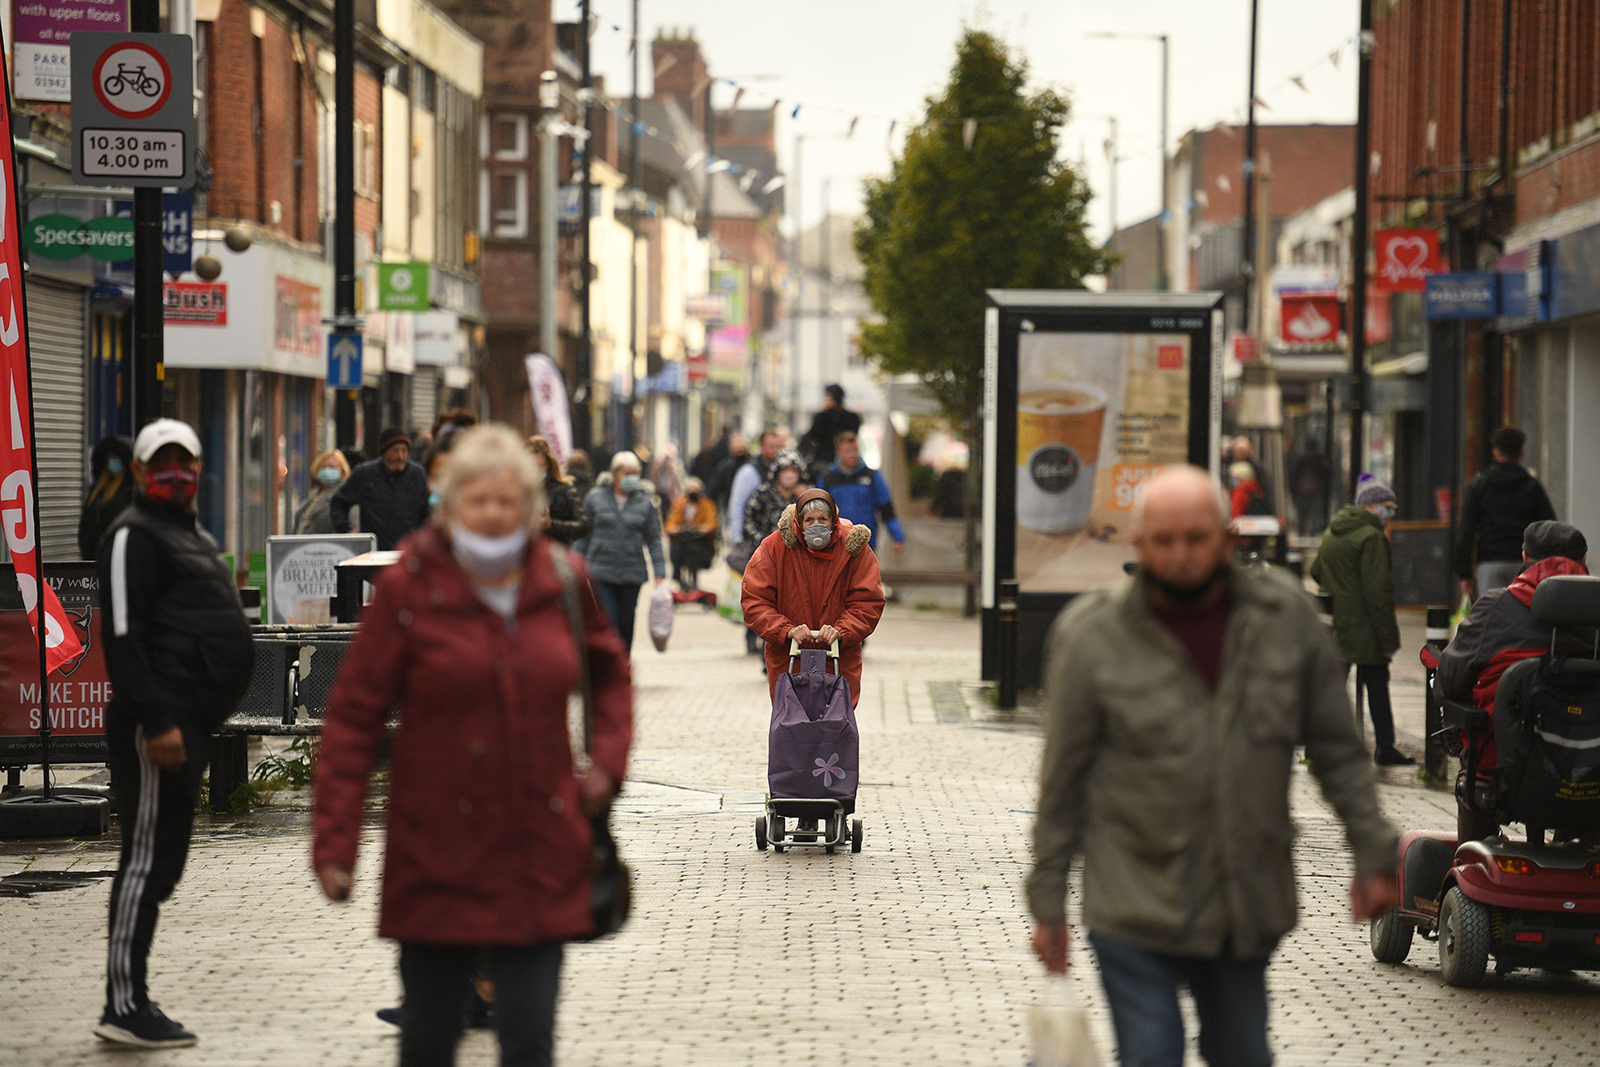 People wearing masks because the novel coronavirus pandemic walk in the high street in Leigh, Greater Manchester, northwest England on October 22.